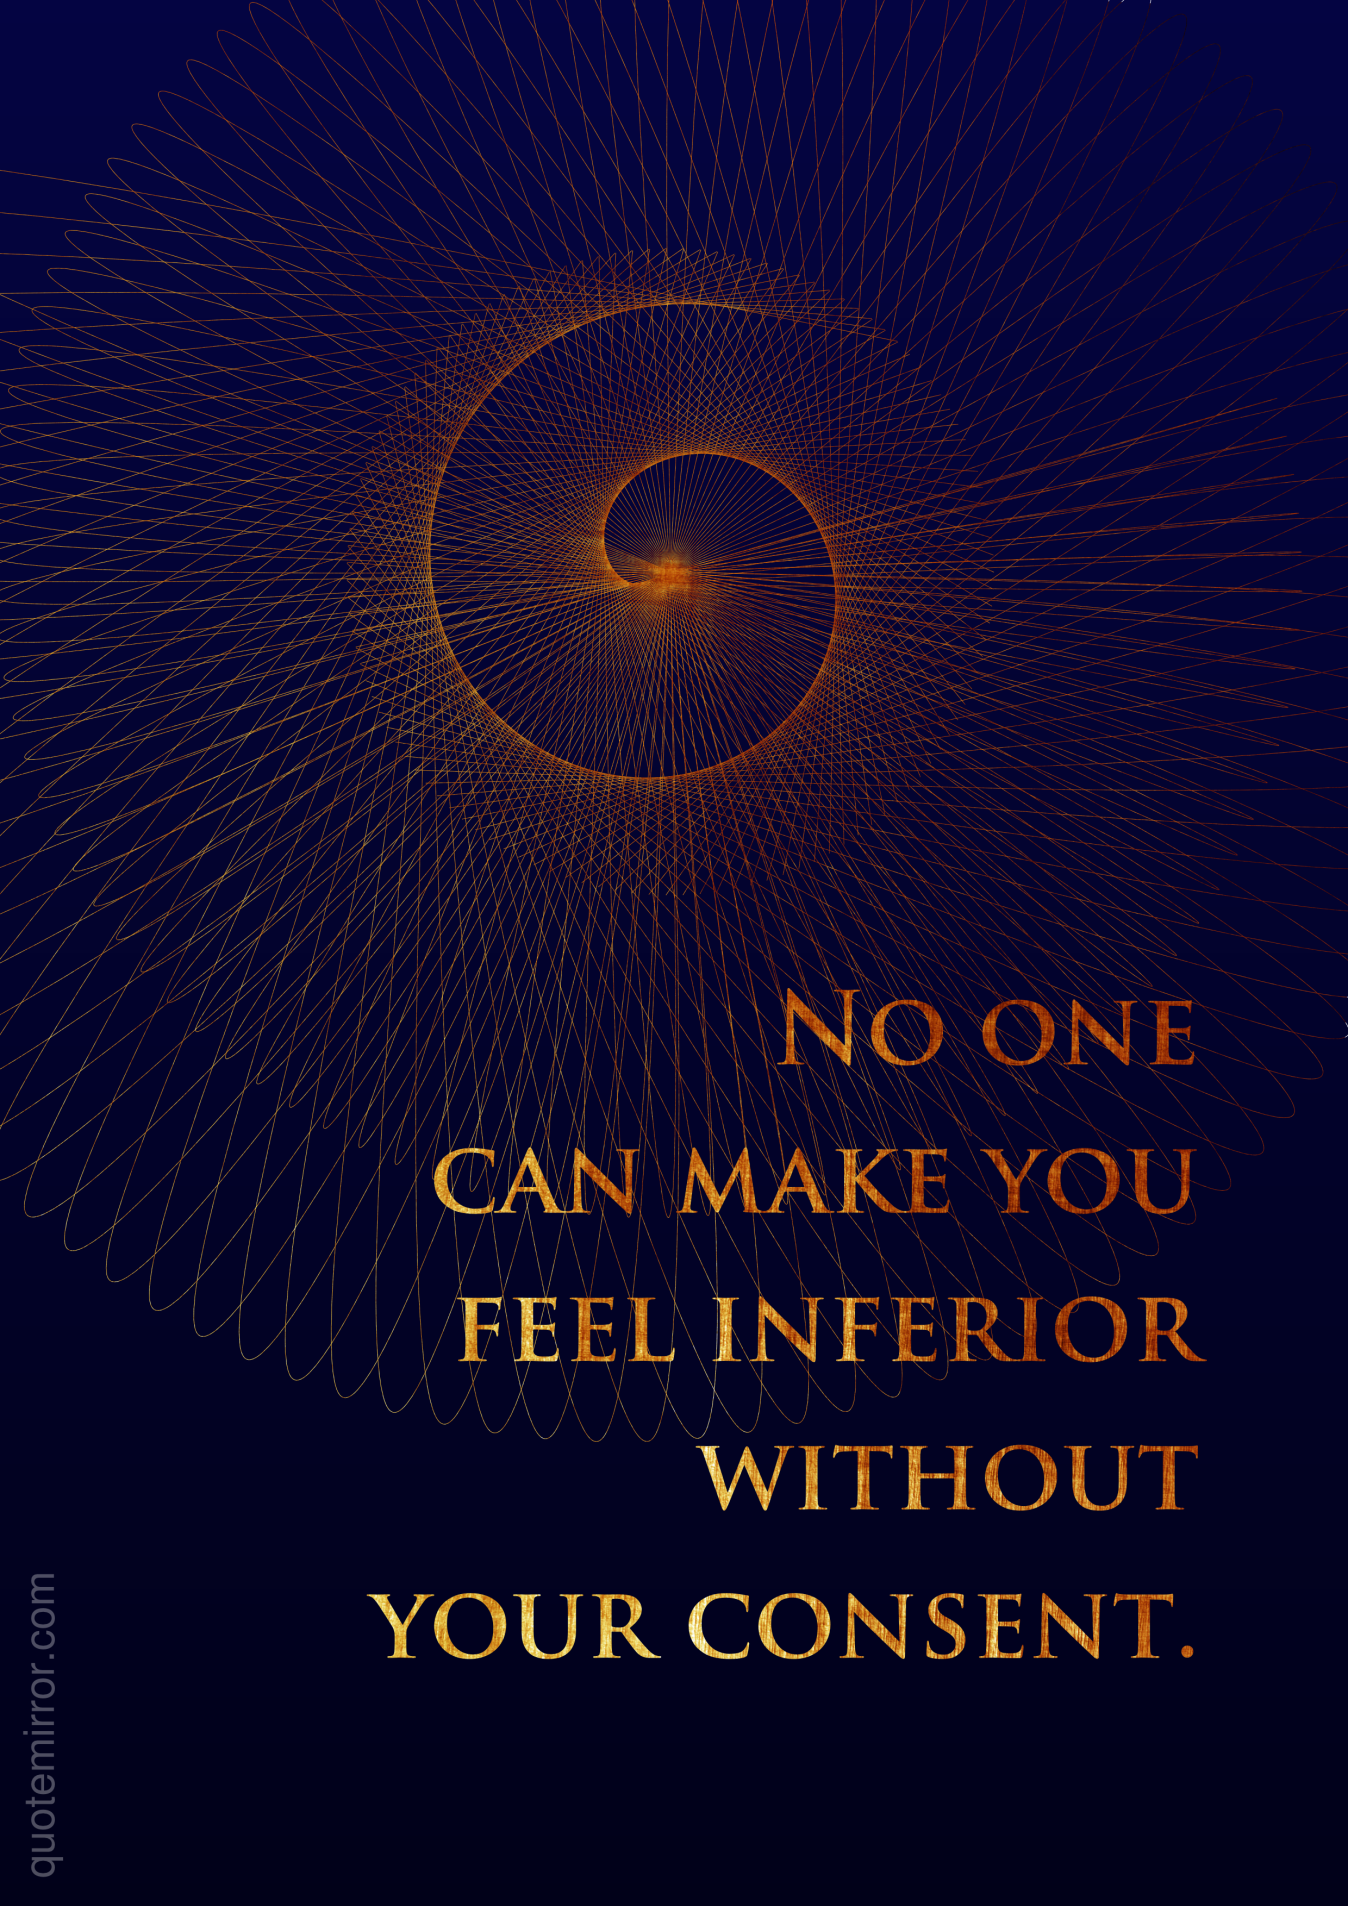 No one can make you feel inferior without your consent.  – #attitude #consent http://www.quotemirror.com/proverbs/your-consent/